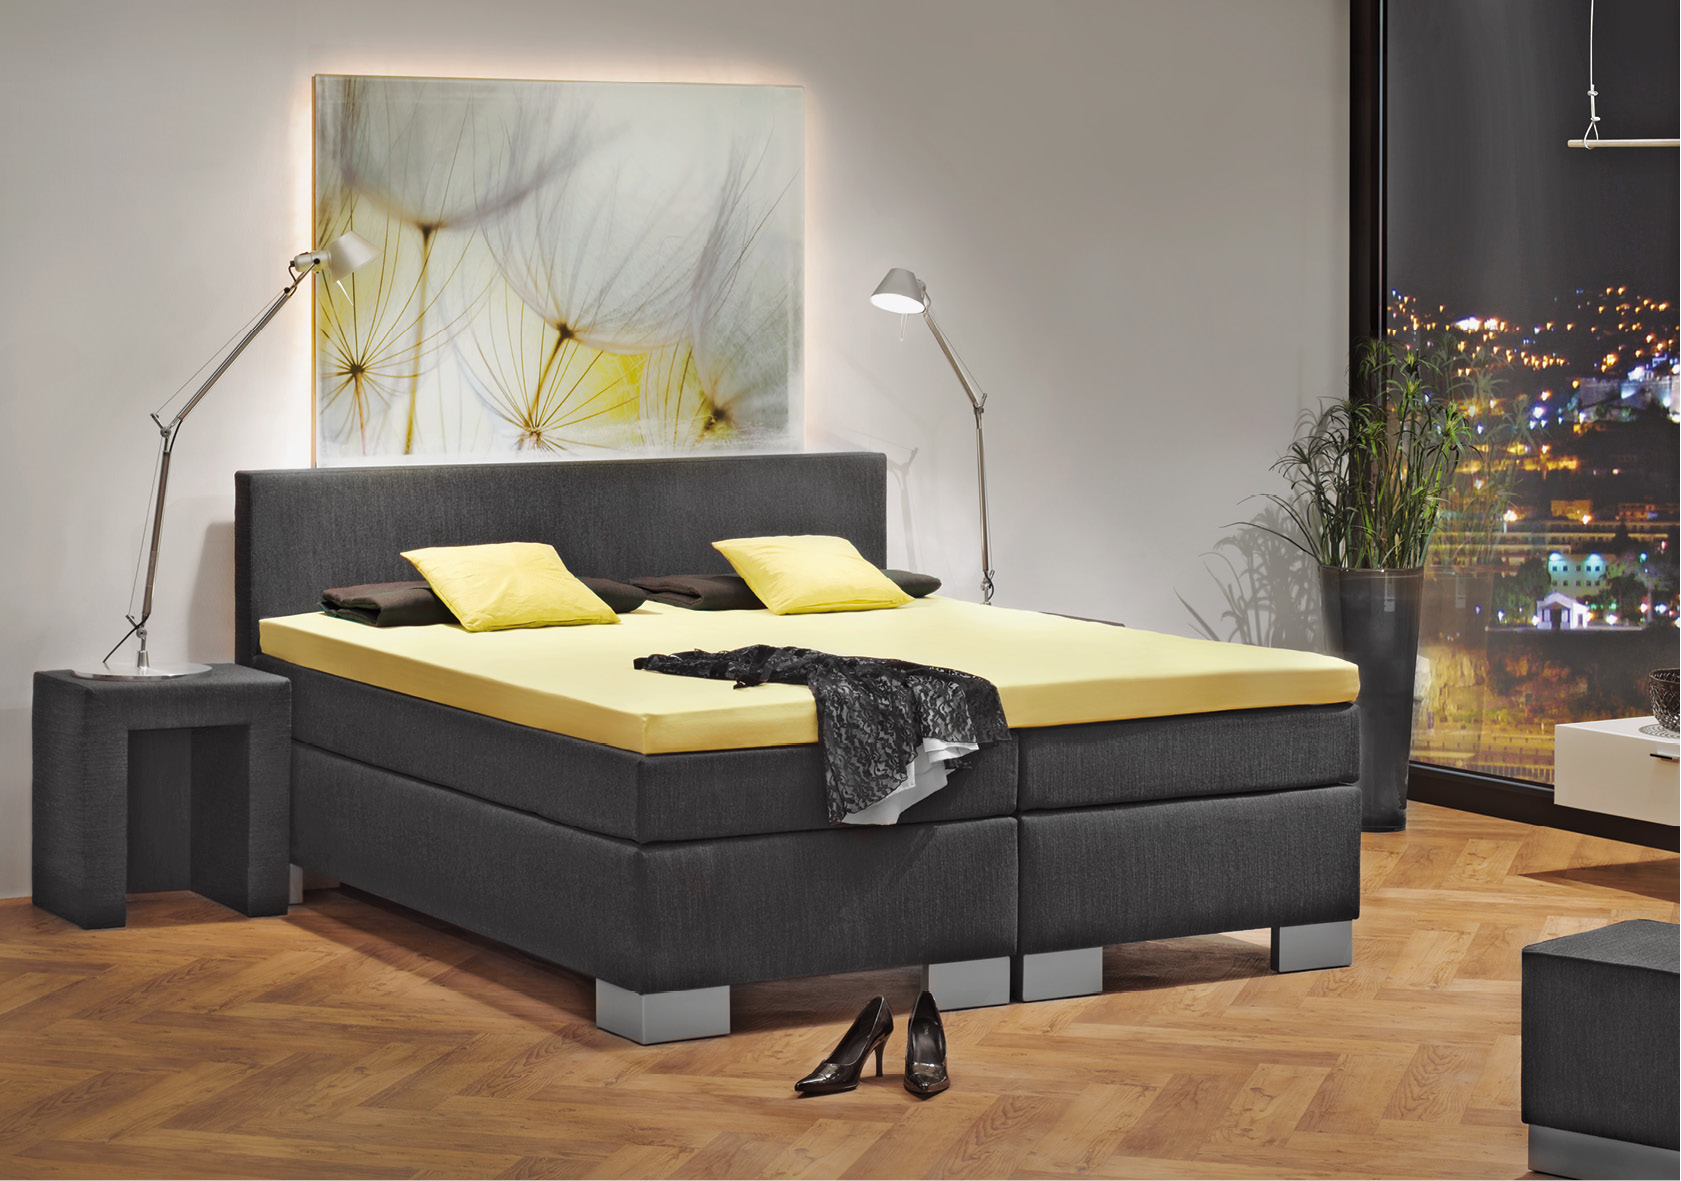 my spring boston m bel schuster inh christoph schuster in velden. Black Bedroom Furniture Sets. Home Design Ideas